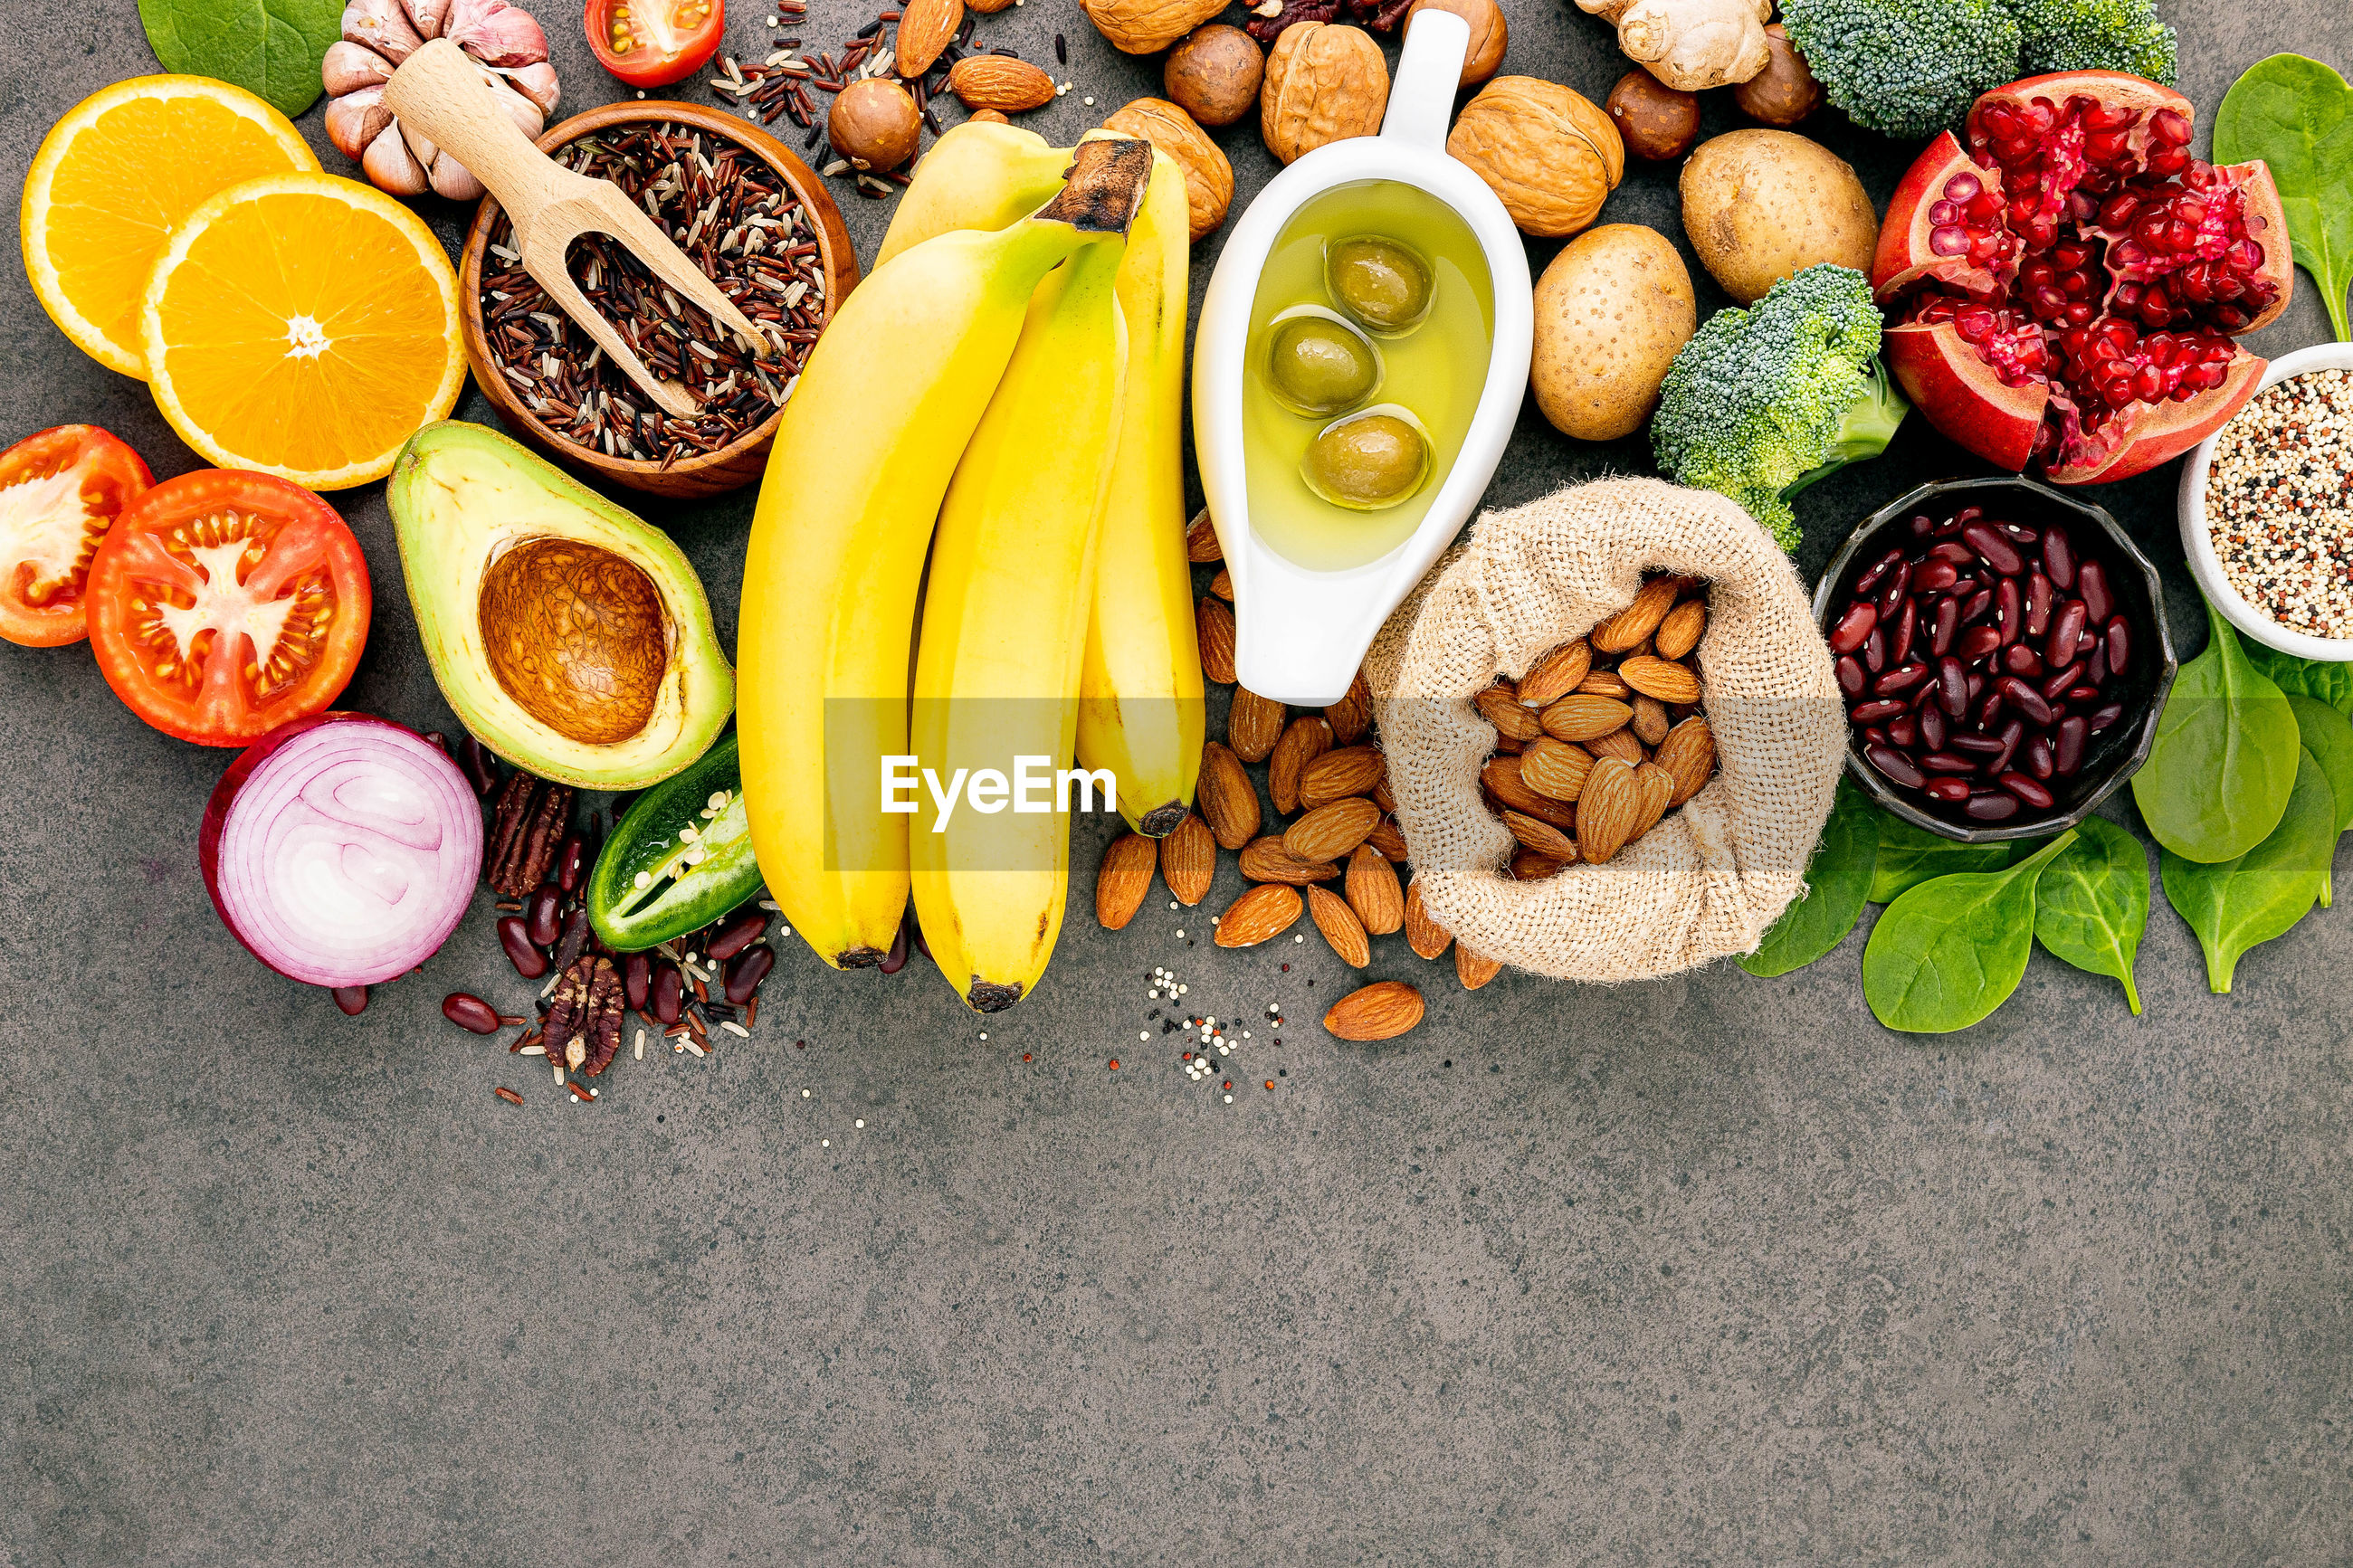 HIGH ANGLE VIEW OF VARIOUS FRUITS ON FLOOR